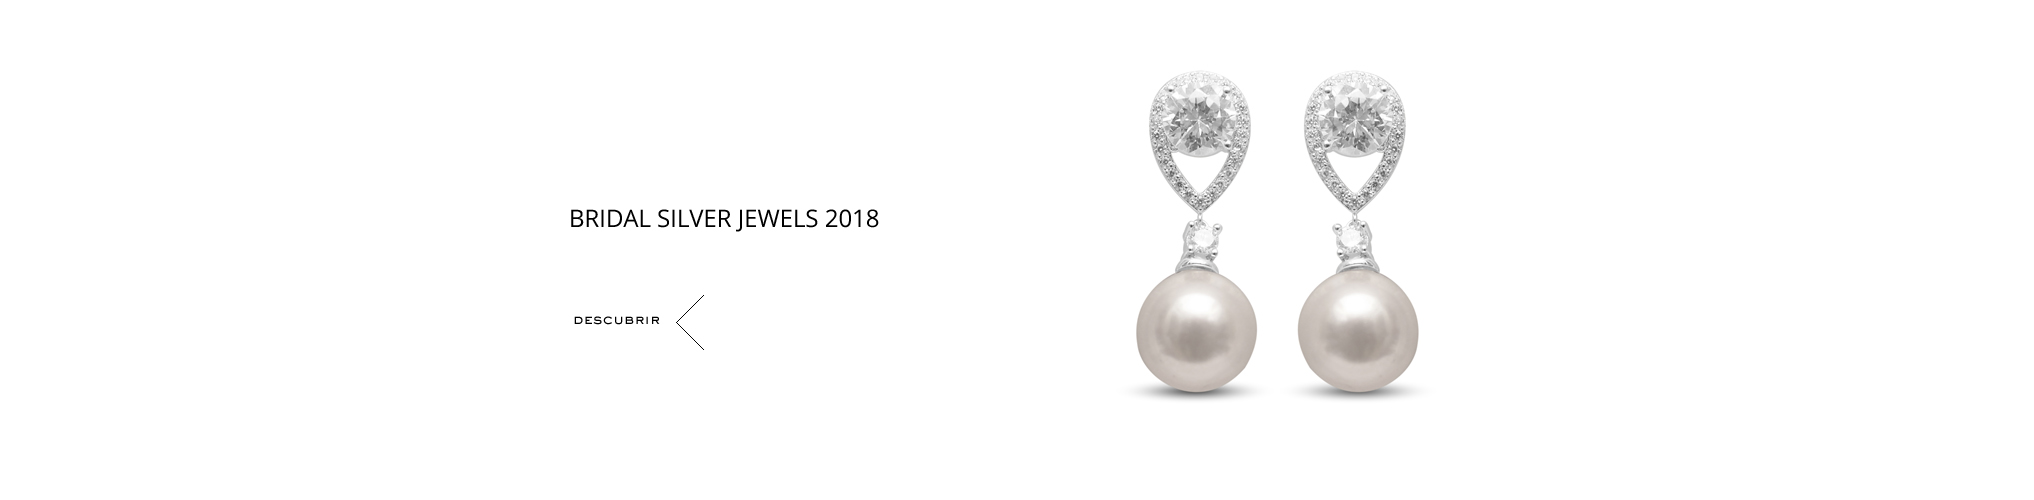 BRIDAL SILVER JEWELS 2018